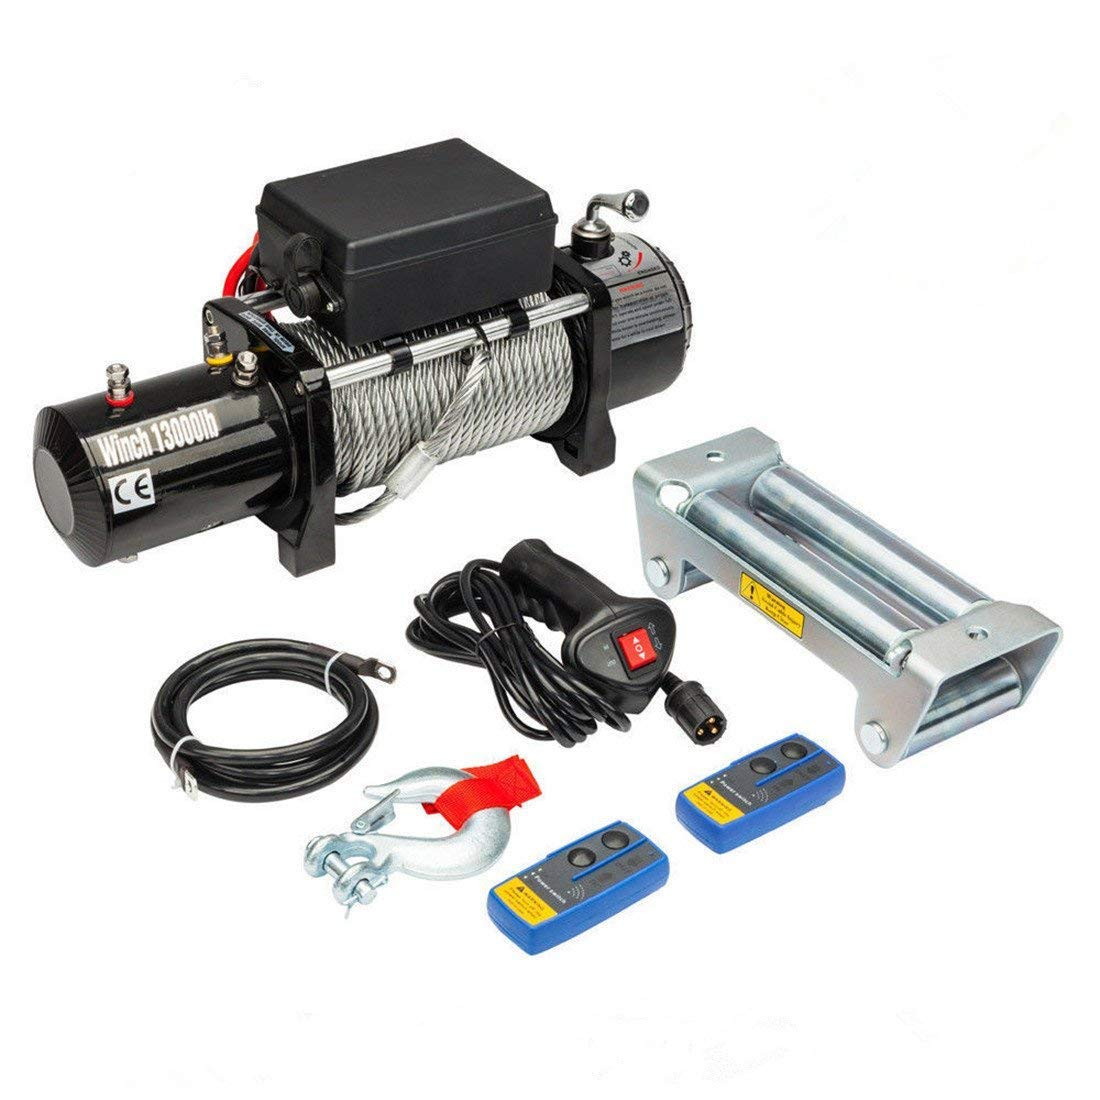 Qiilu Recovery Winch 3000lbs Electric Recovery Winch 12V Wire Remote Control Kit for Truck SUV ATV Tow Boat Trailer